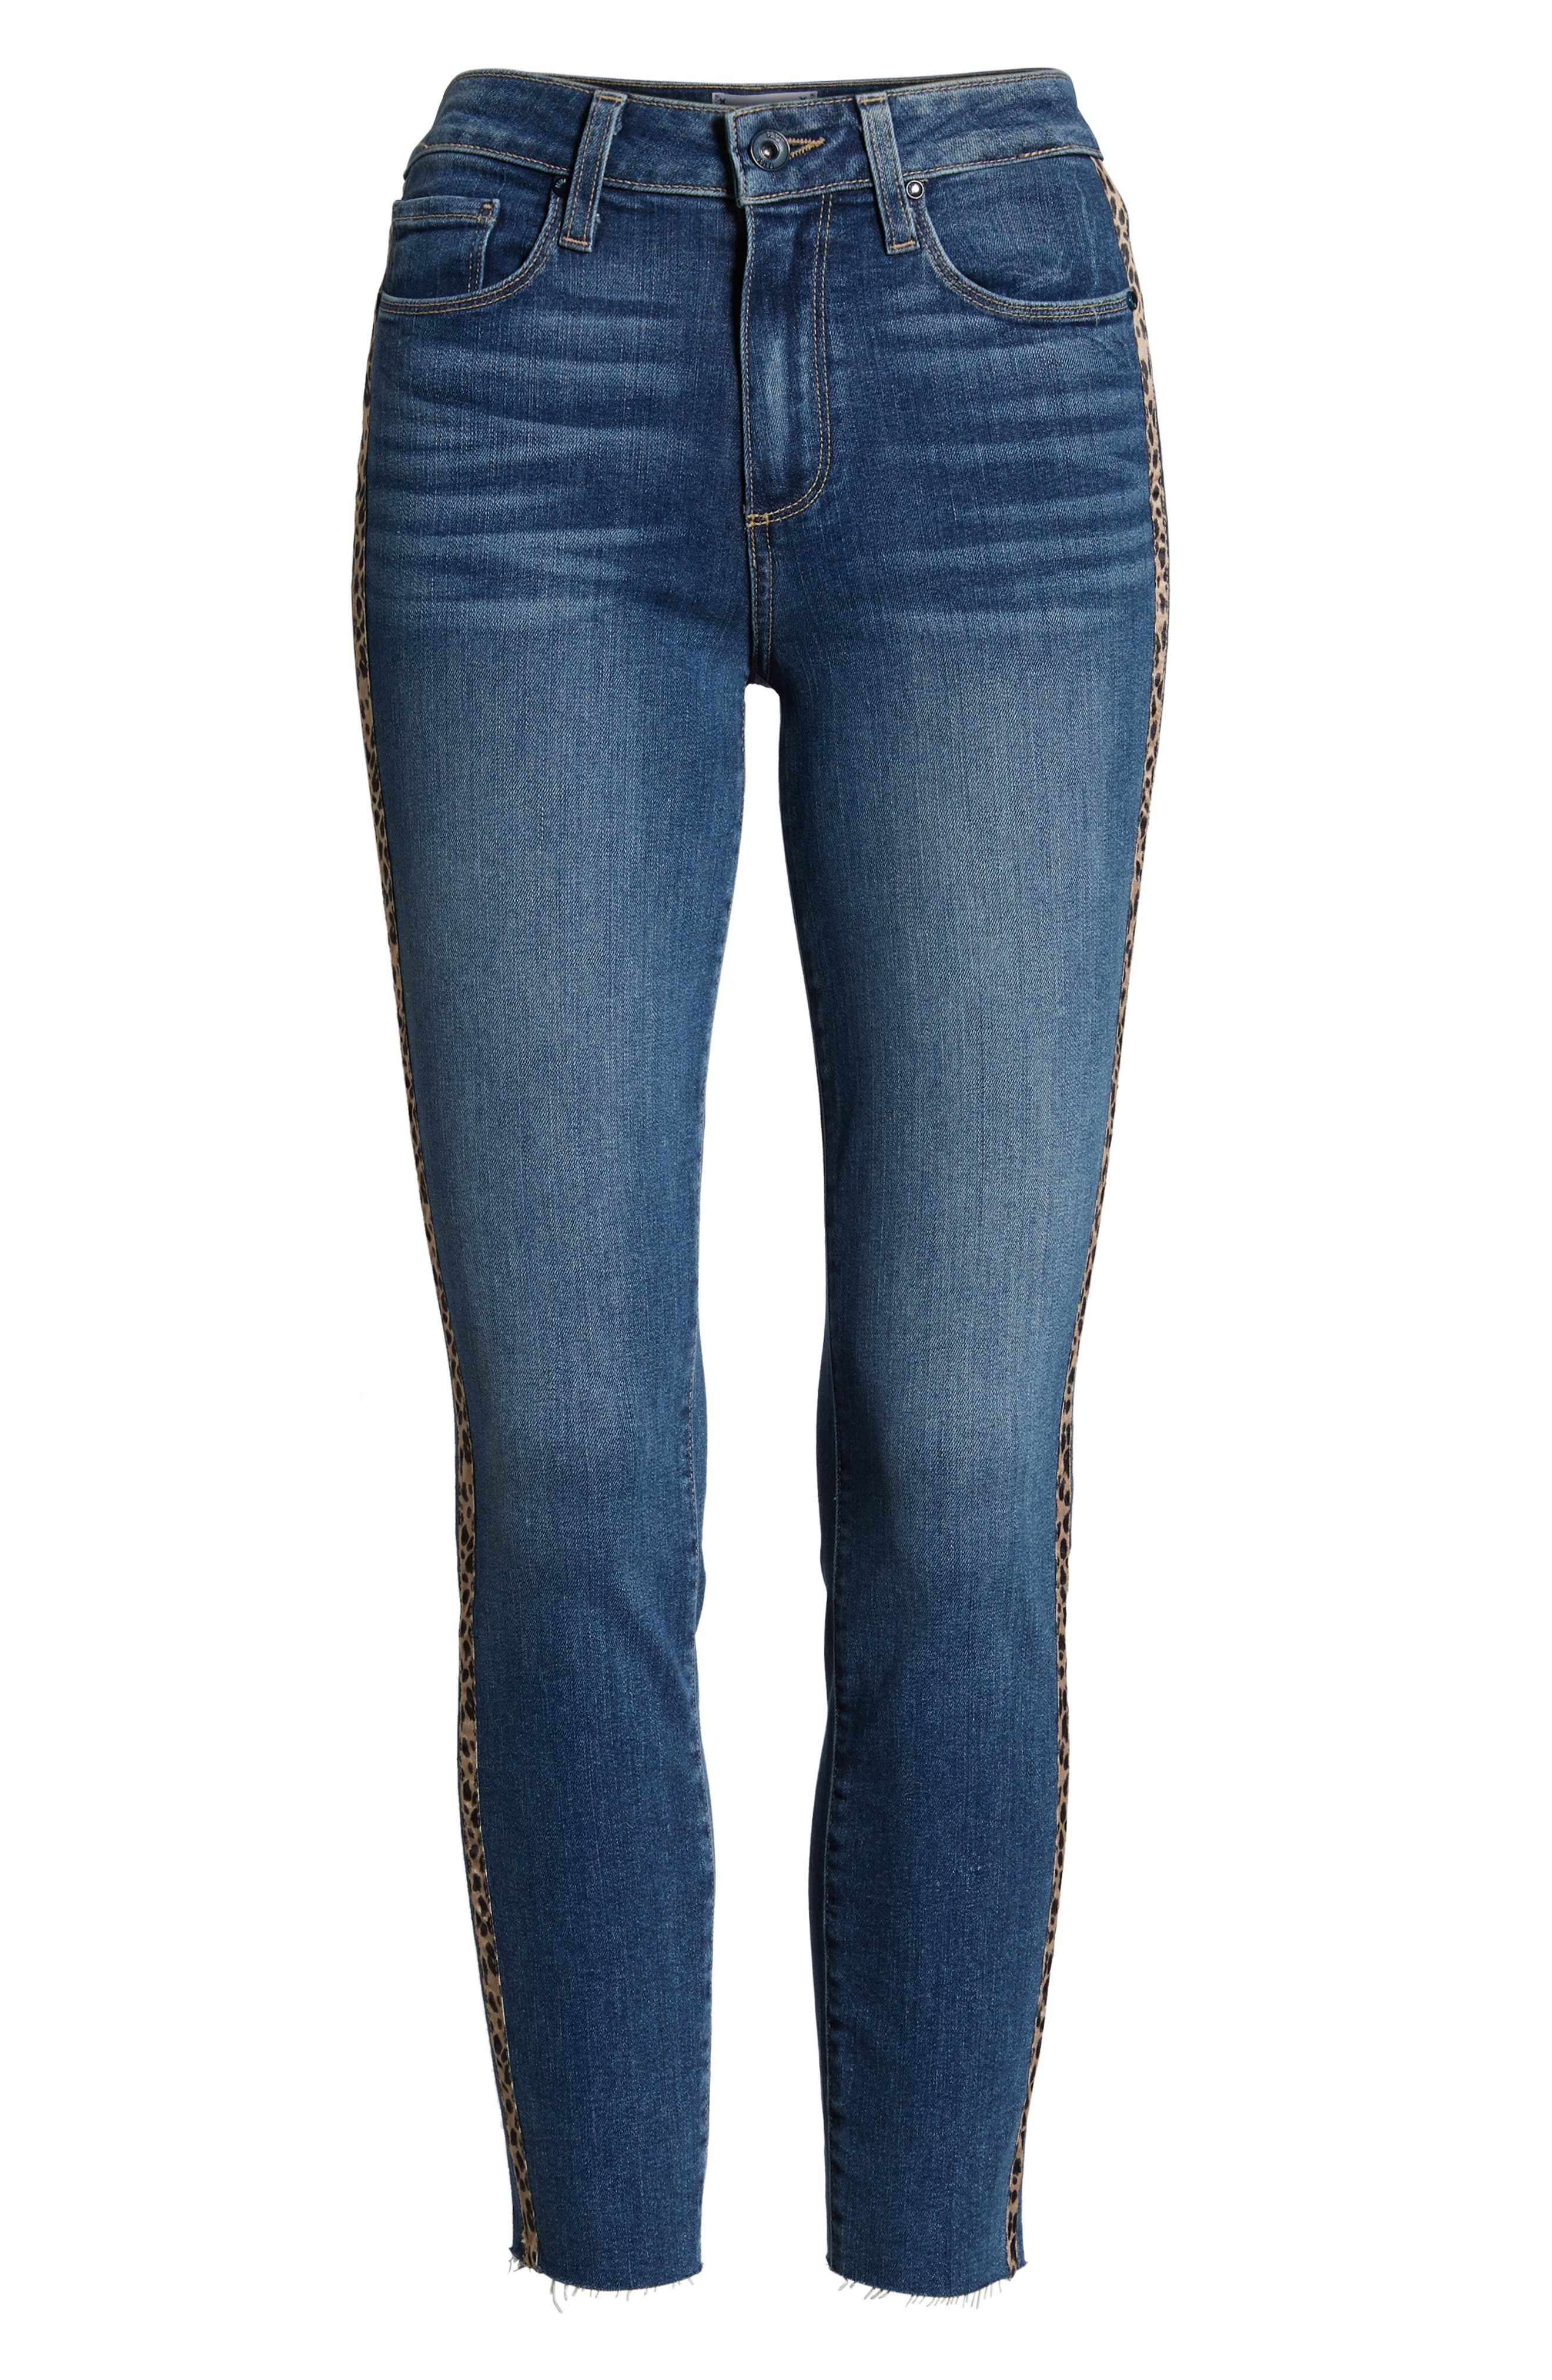 PAIGE, Hoxton High Waist Raw Hem Crop Skinny Jeans, Alternate thumbnail 6, color, BARKLEY W/ LEOPARD